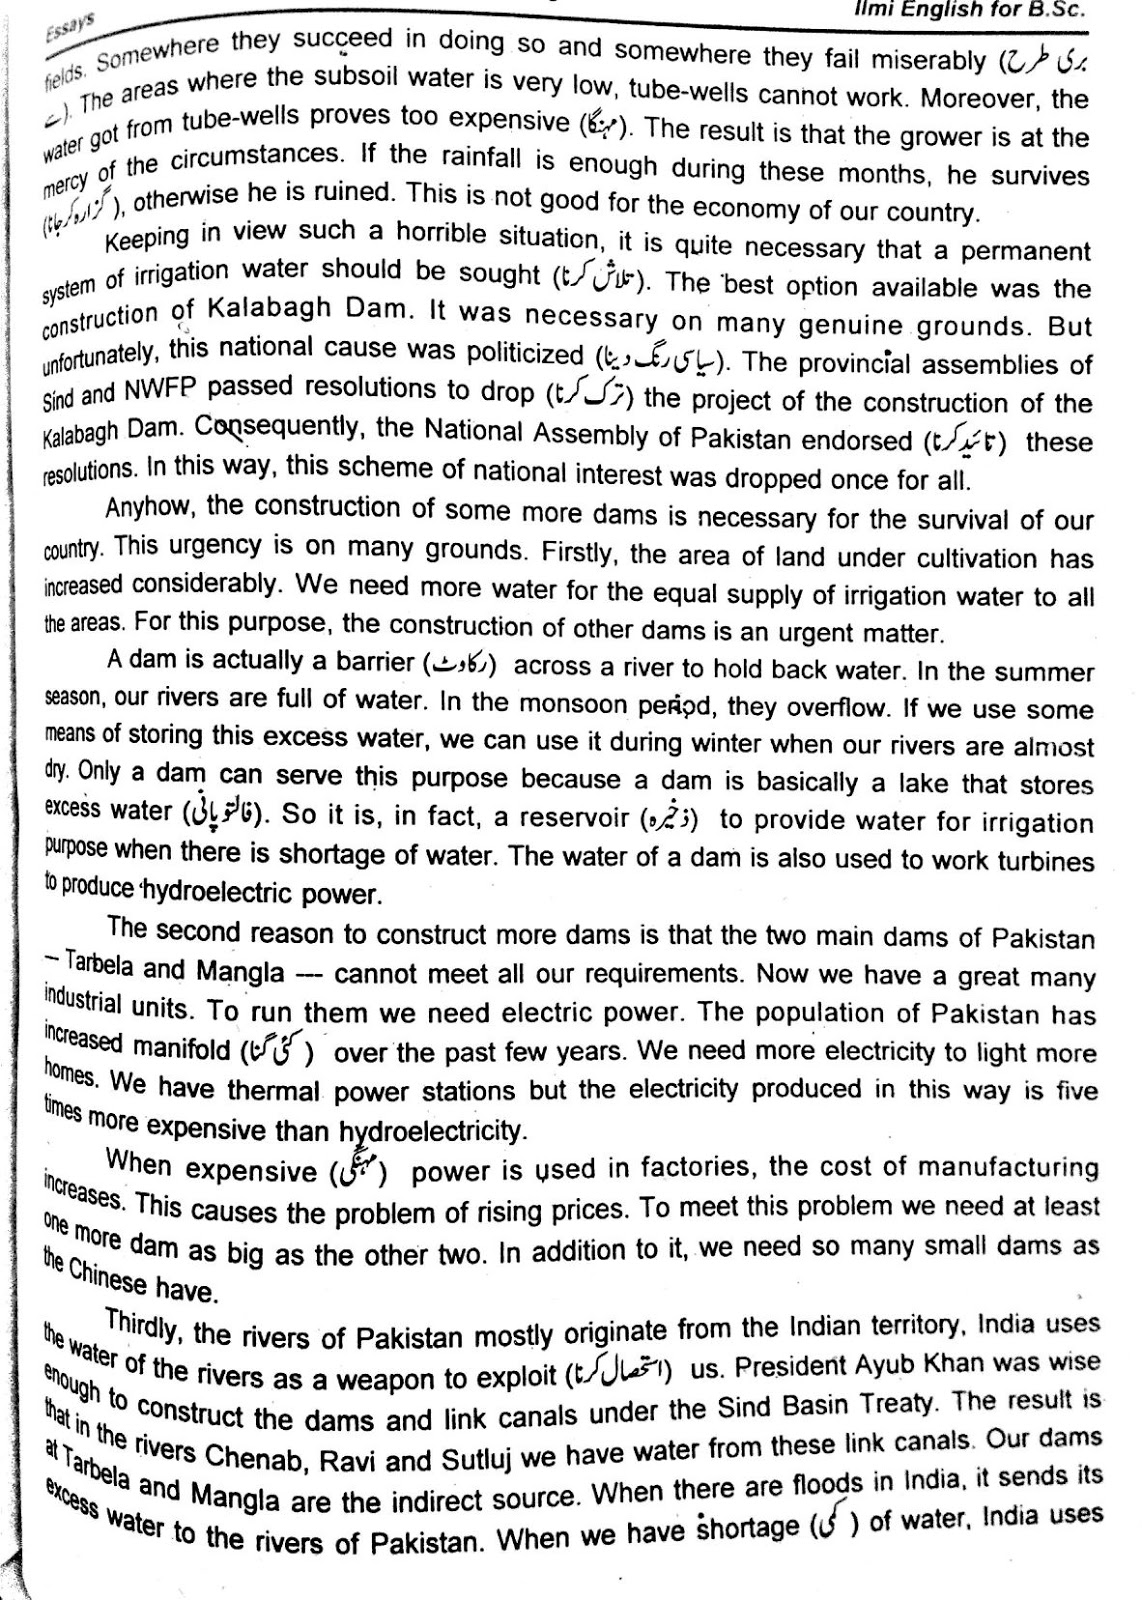 Essay on water shortage in pakistan